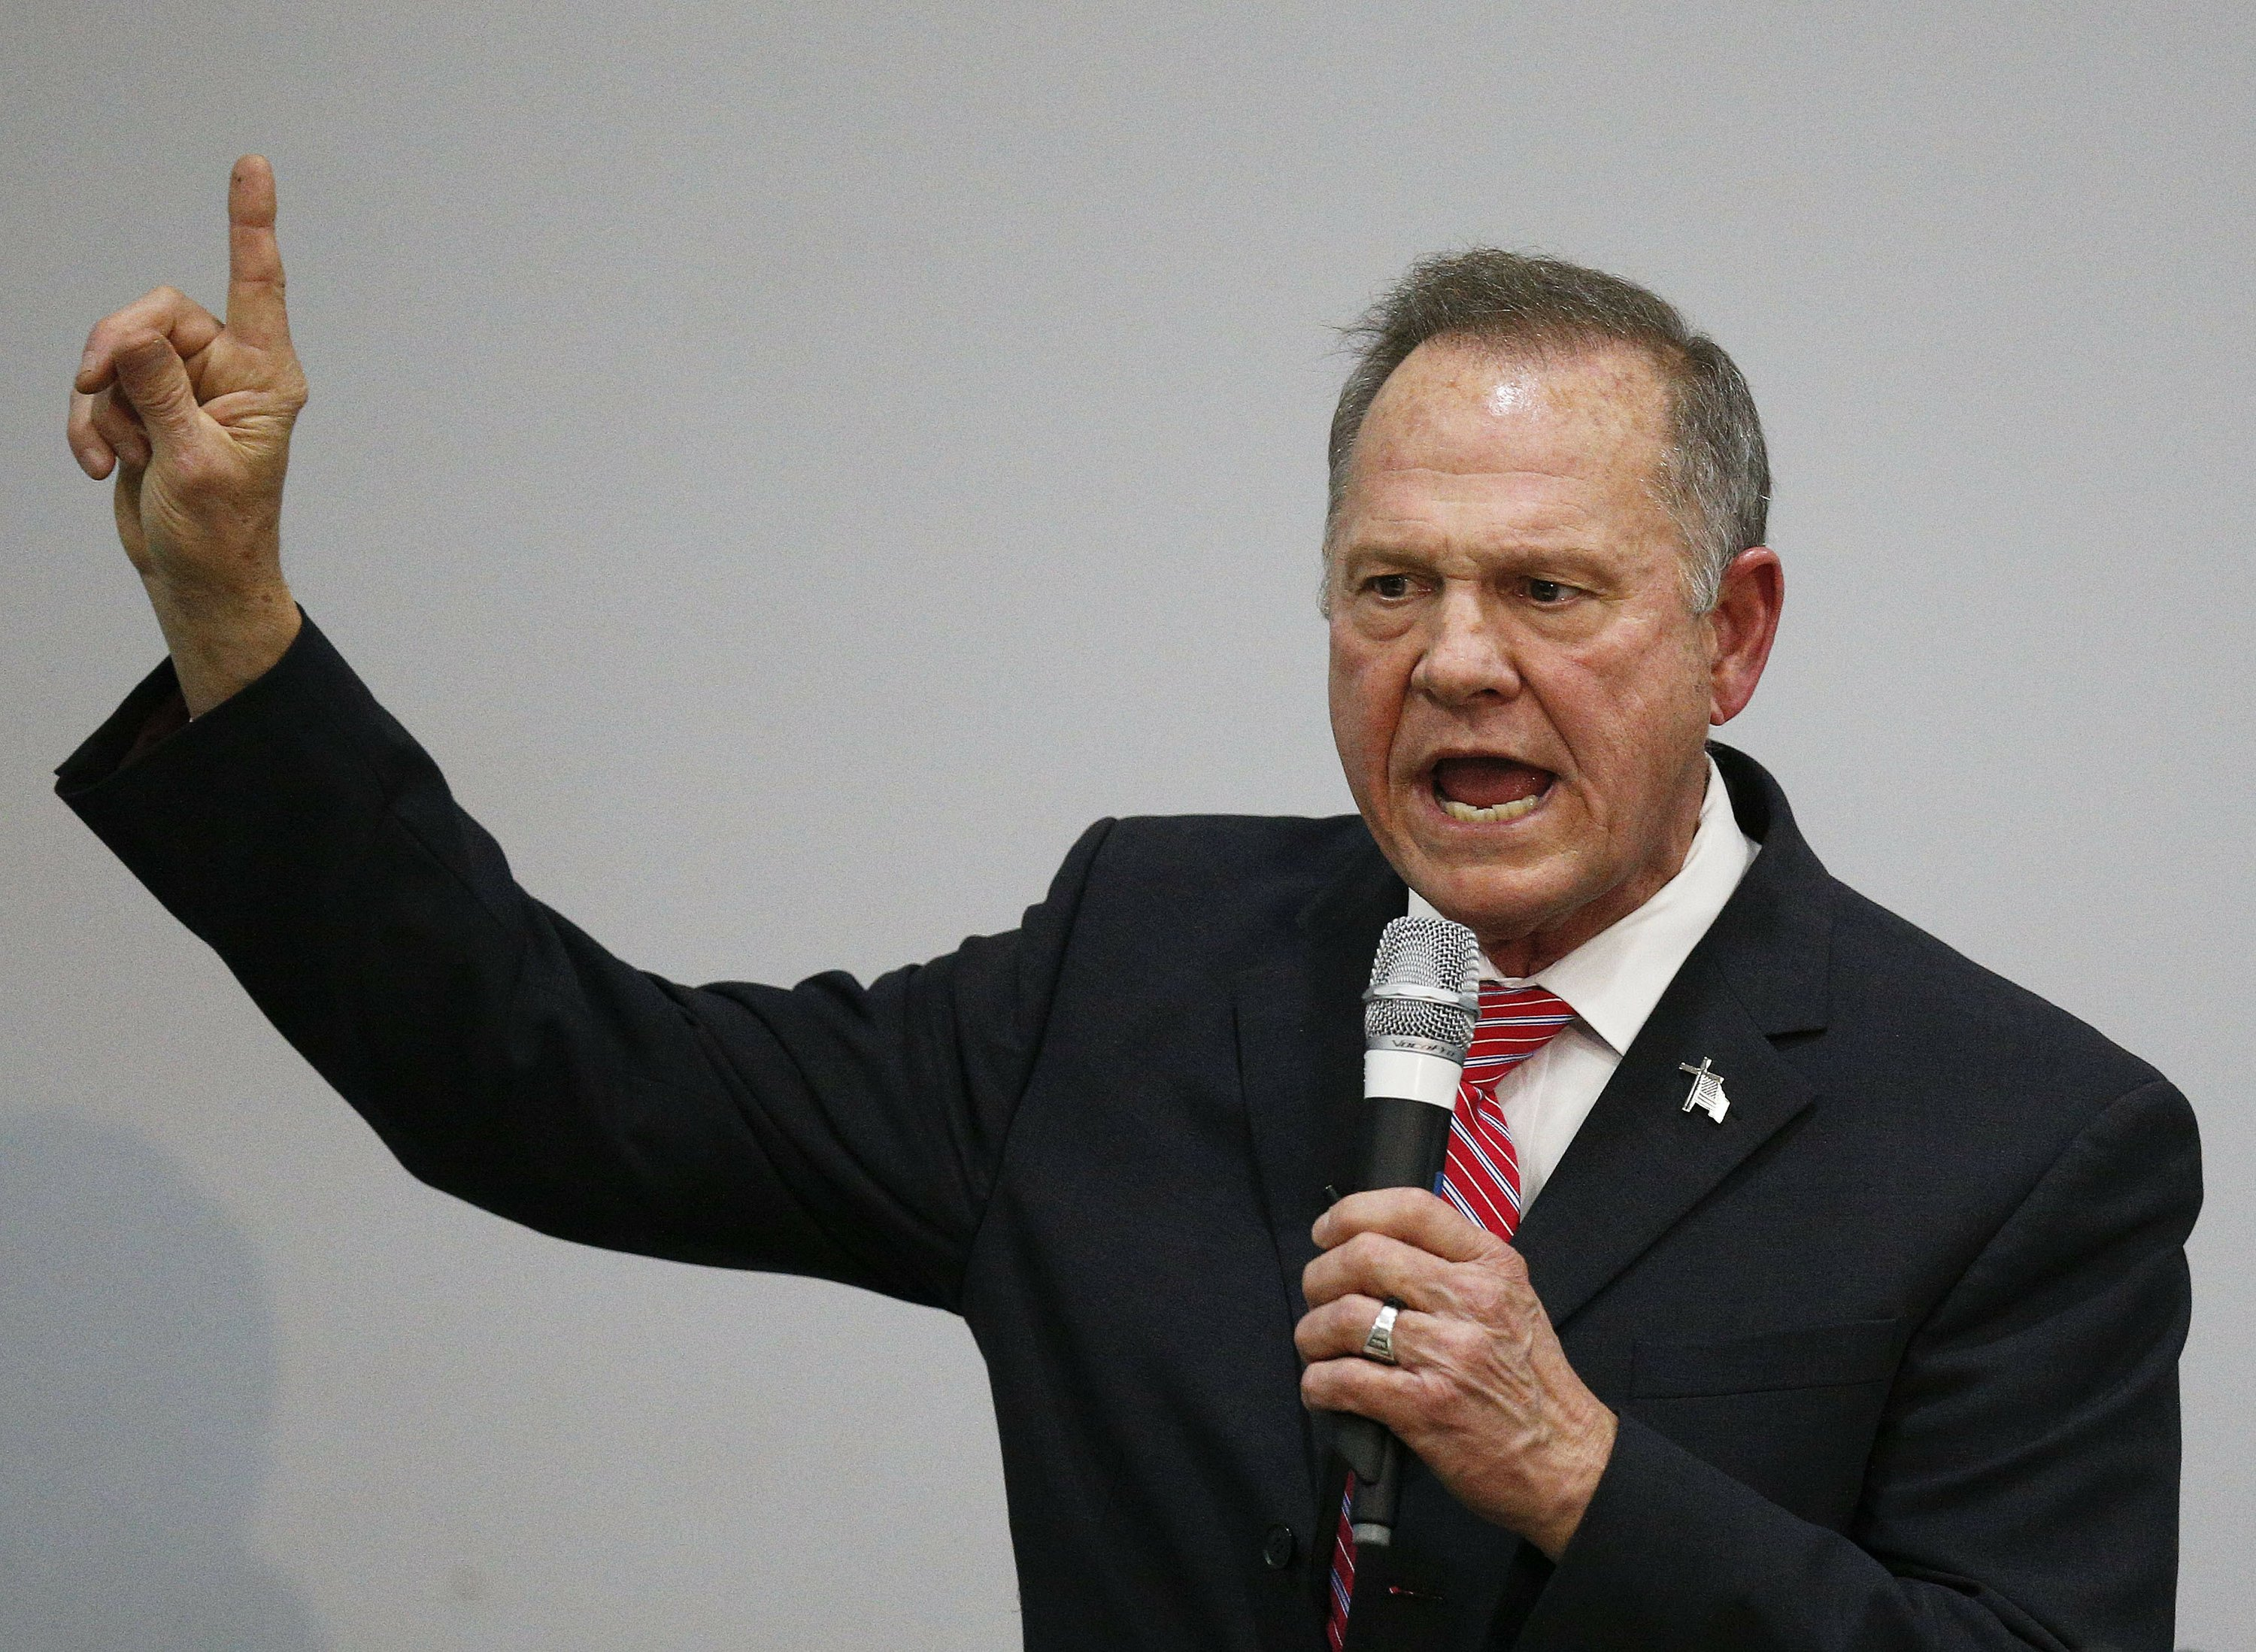 The Latest: Alabama Republican Party says it stands by Moore